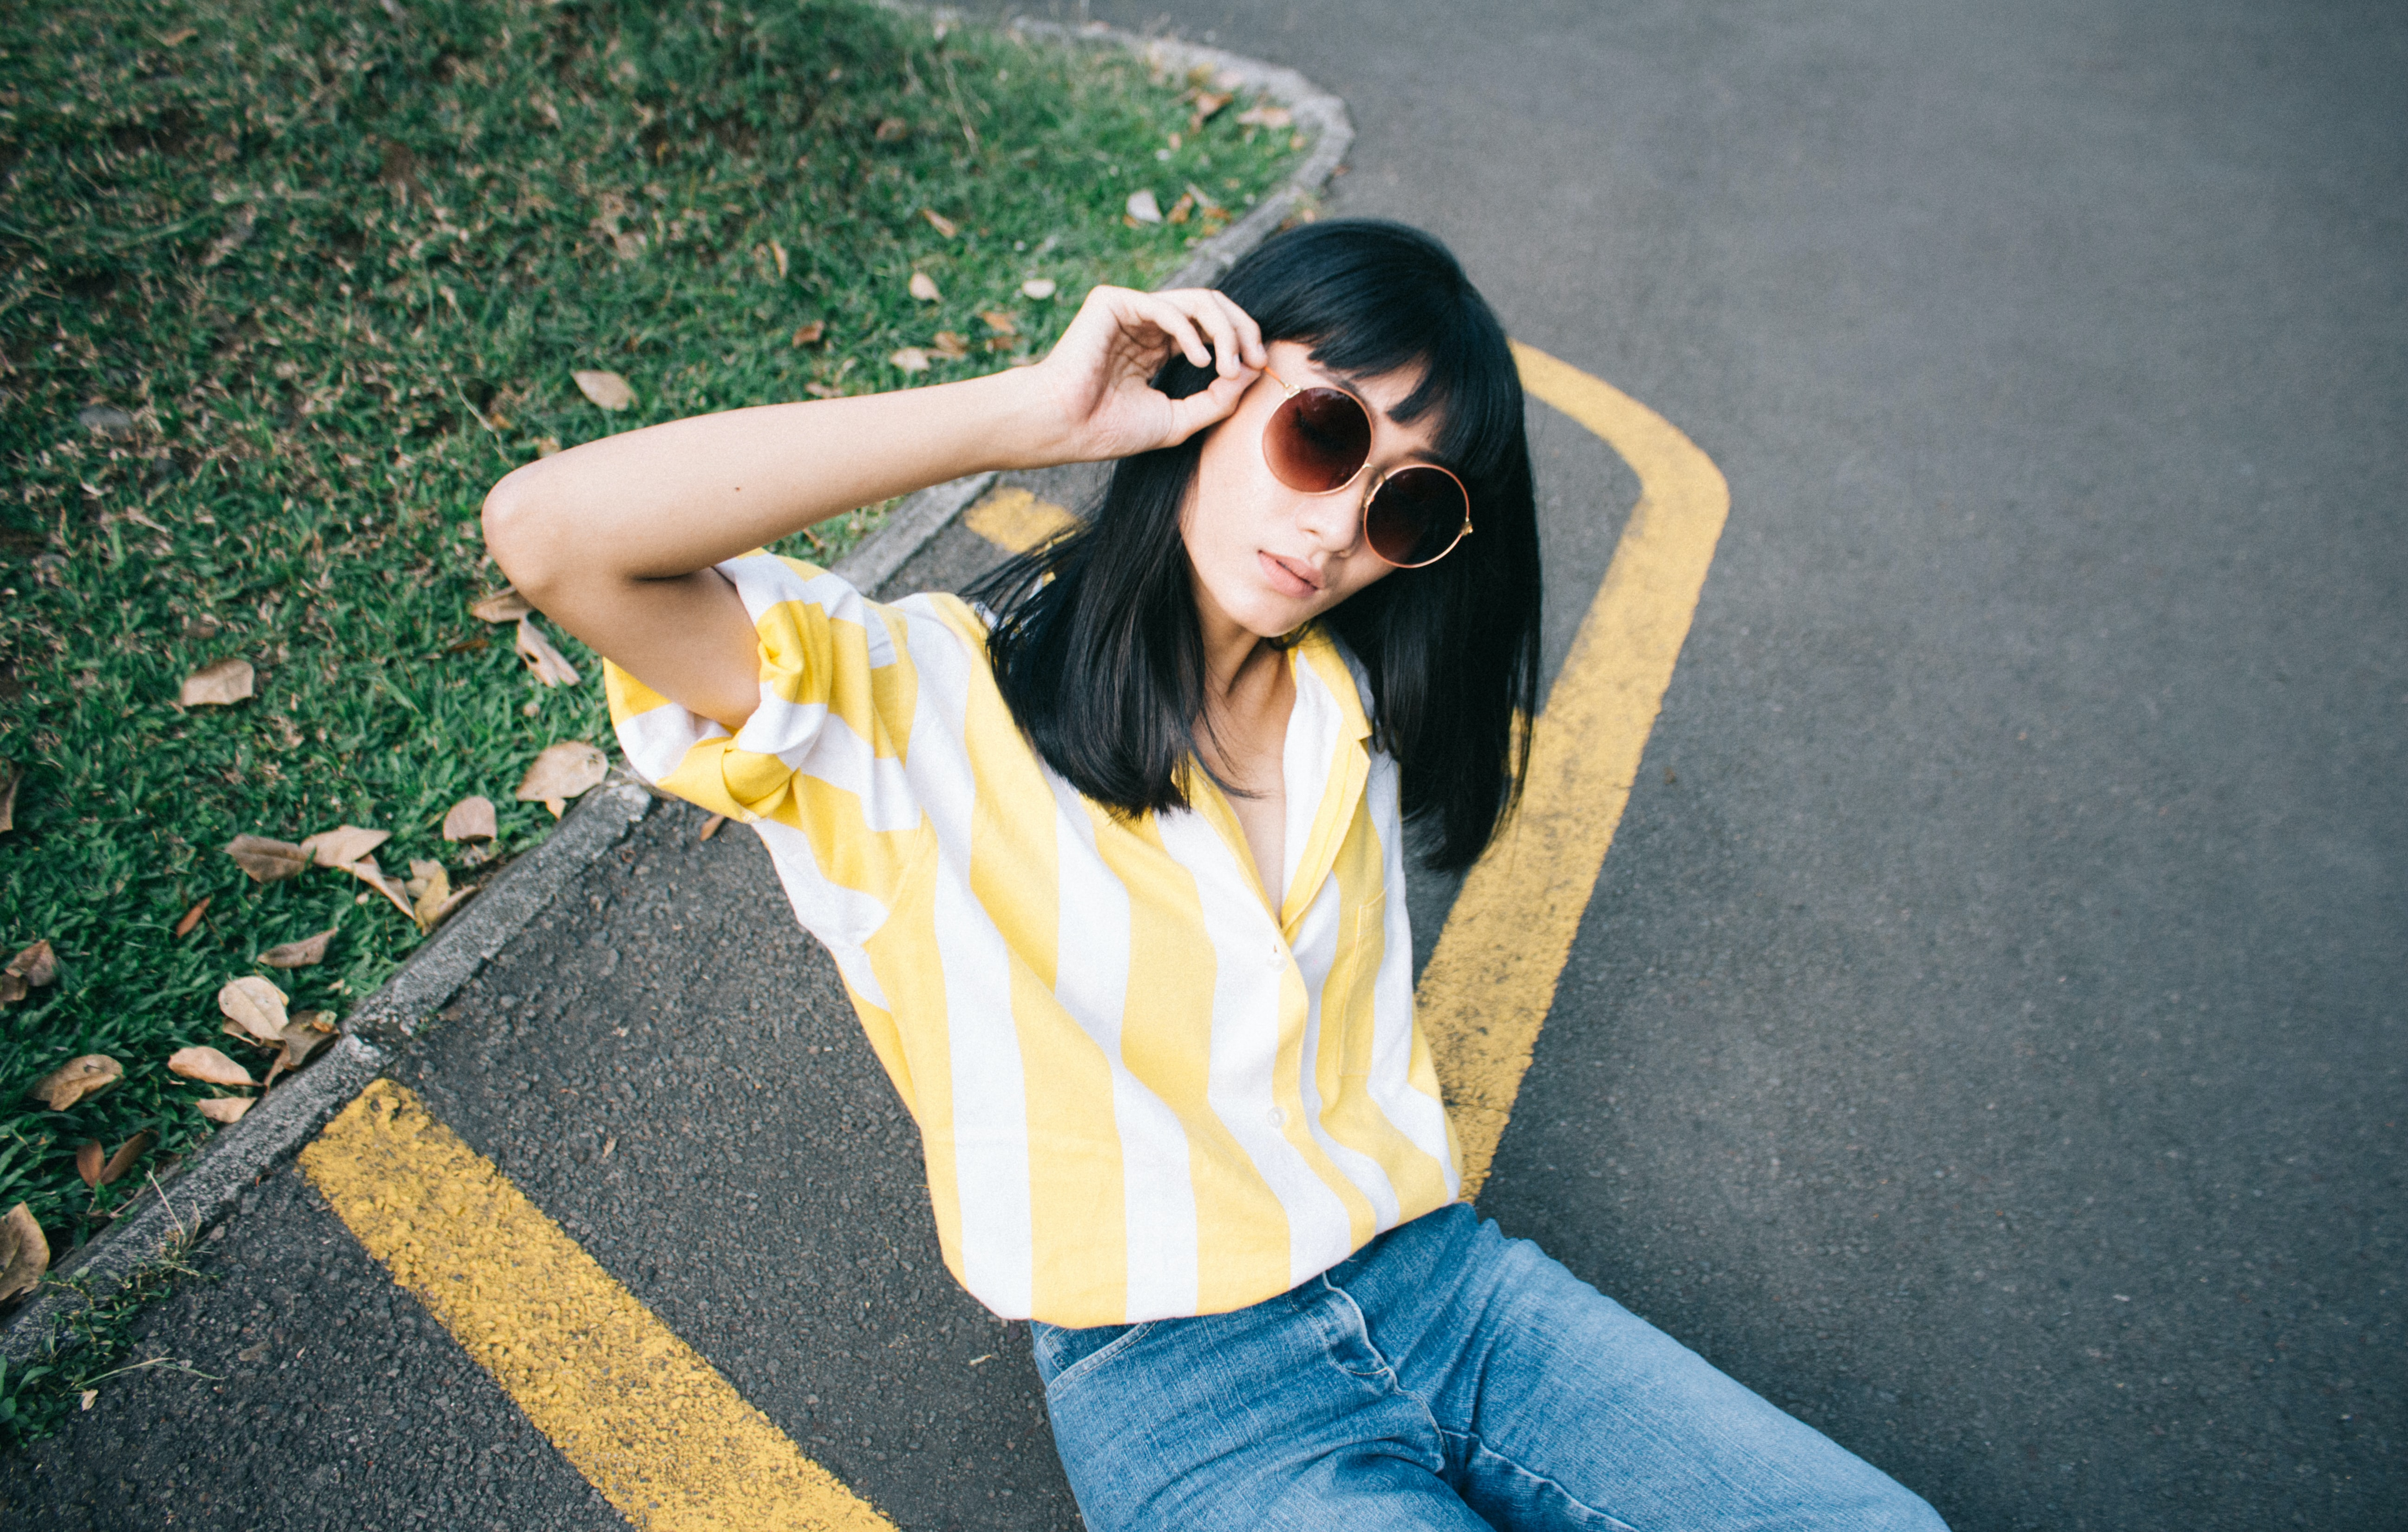 woman wearing yellow and white striped collared shirt holding round-shaped brown sunglasses sitting on gray concrete pavement during daytime